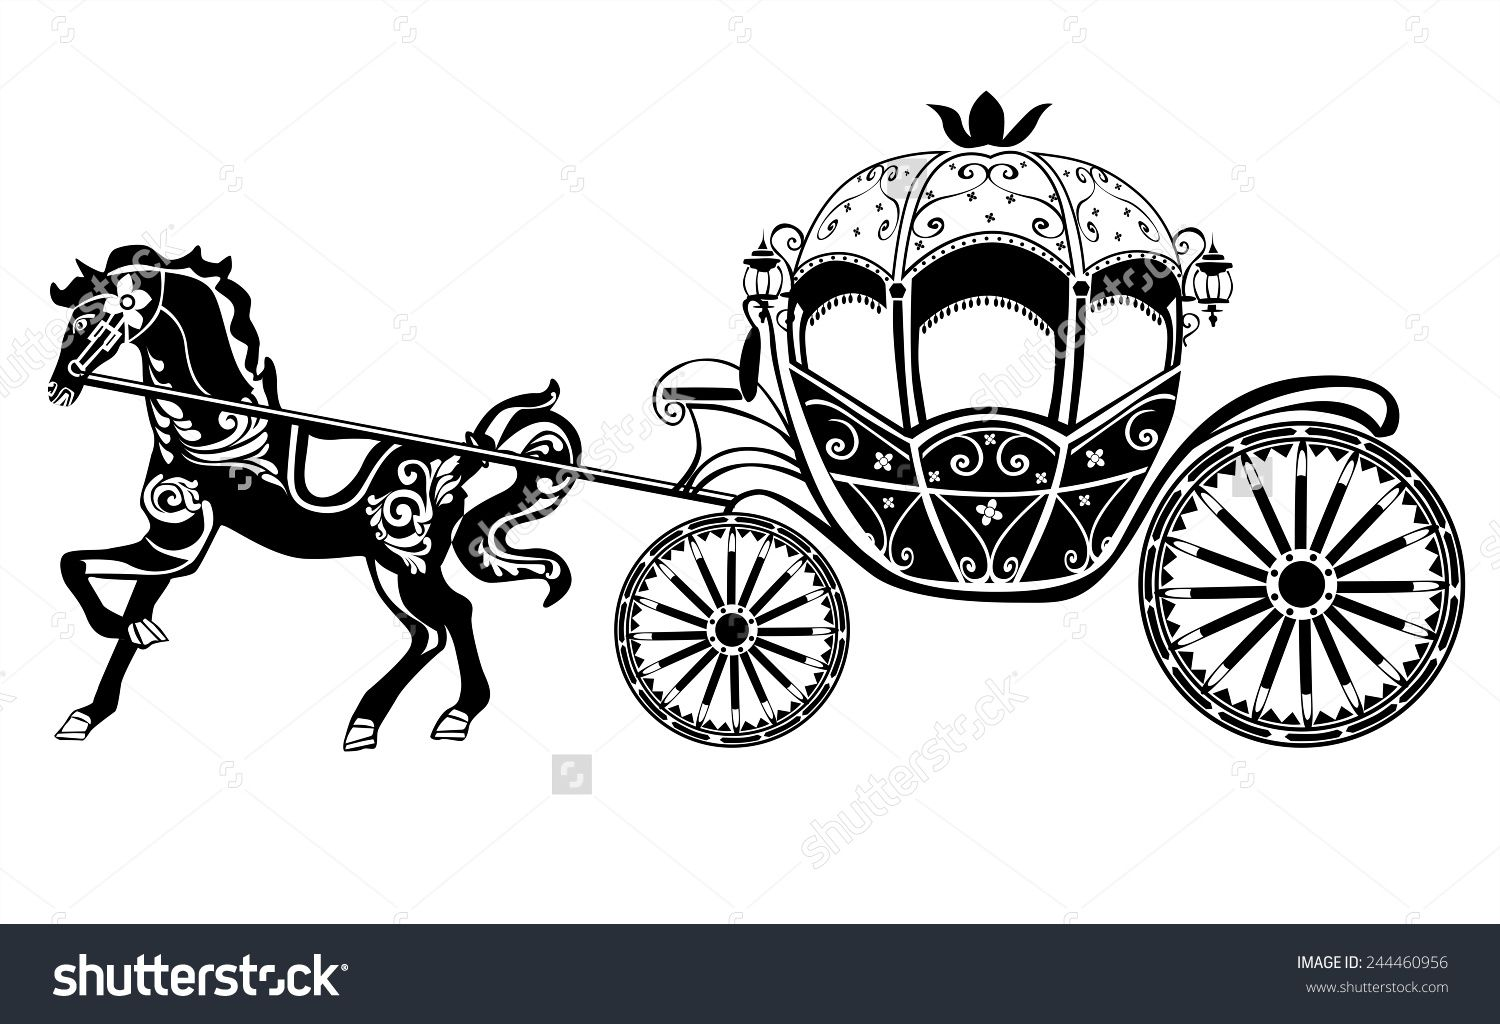 Carriage clipart horse carriage. Silhouette with preview save